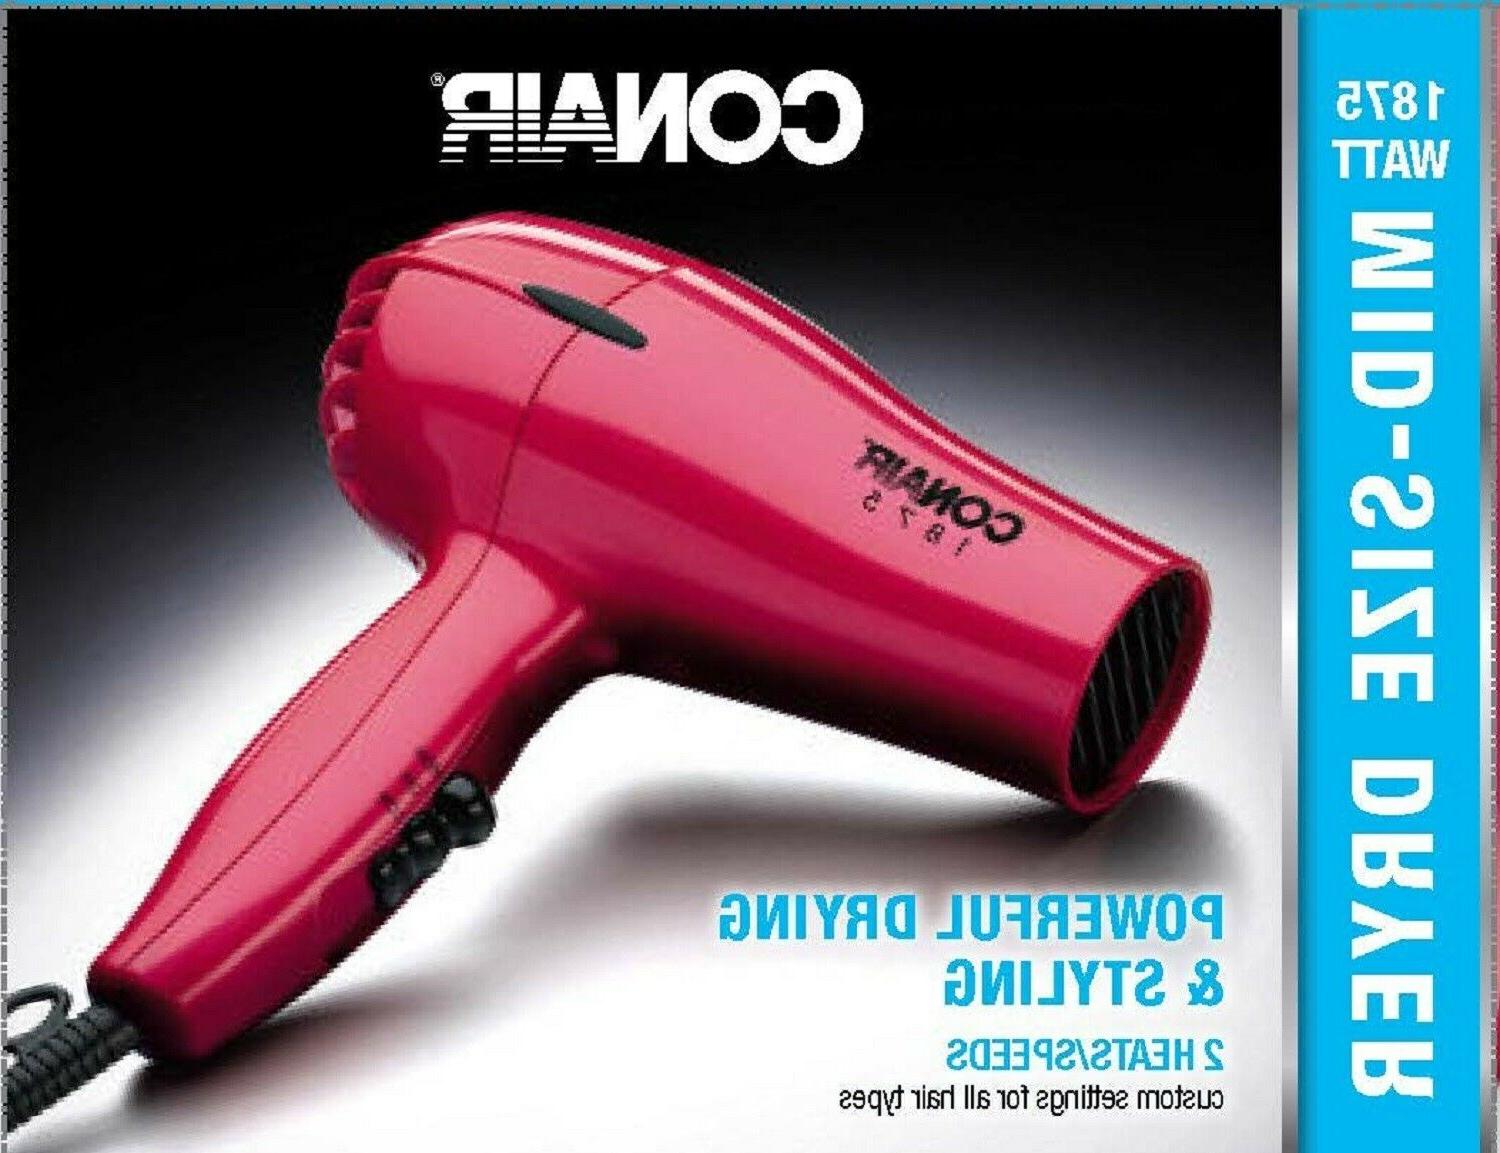 Hair Styler Beauty 1875W Powerful Blower